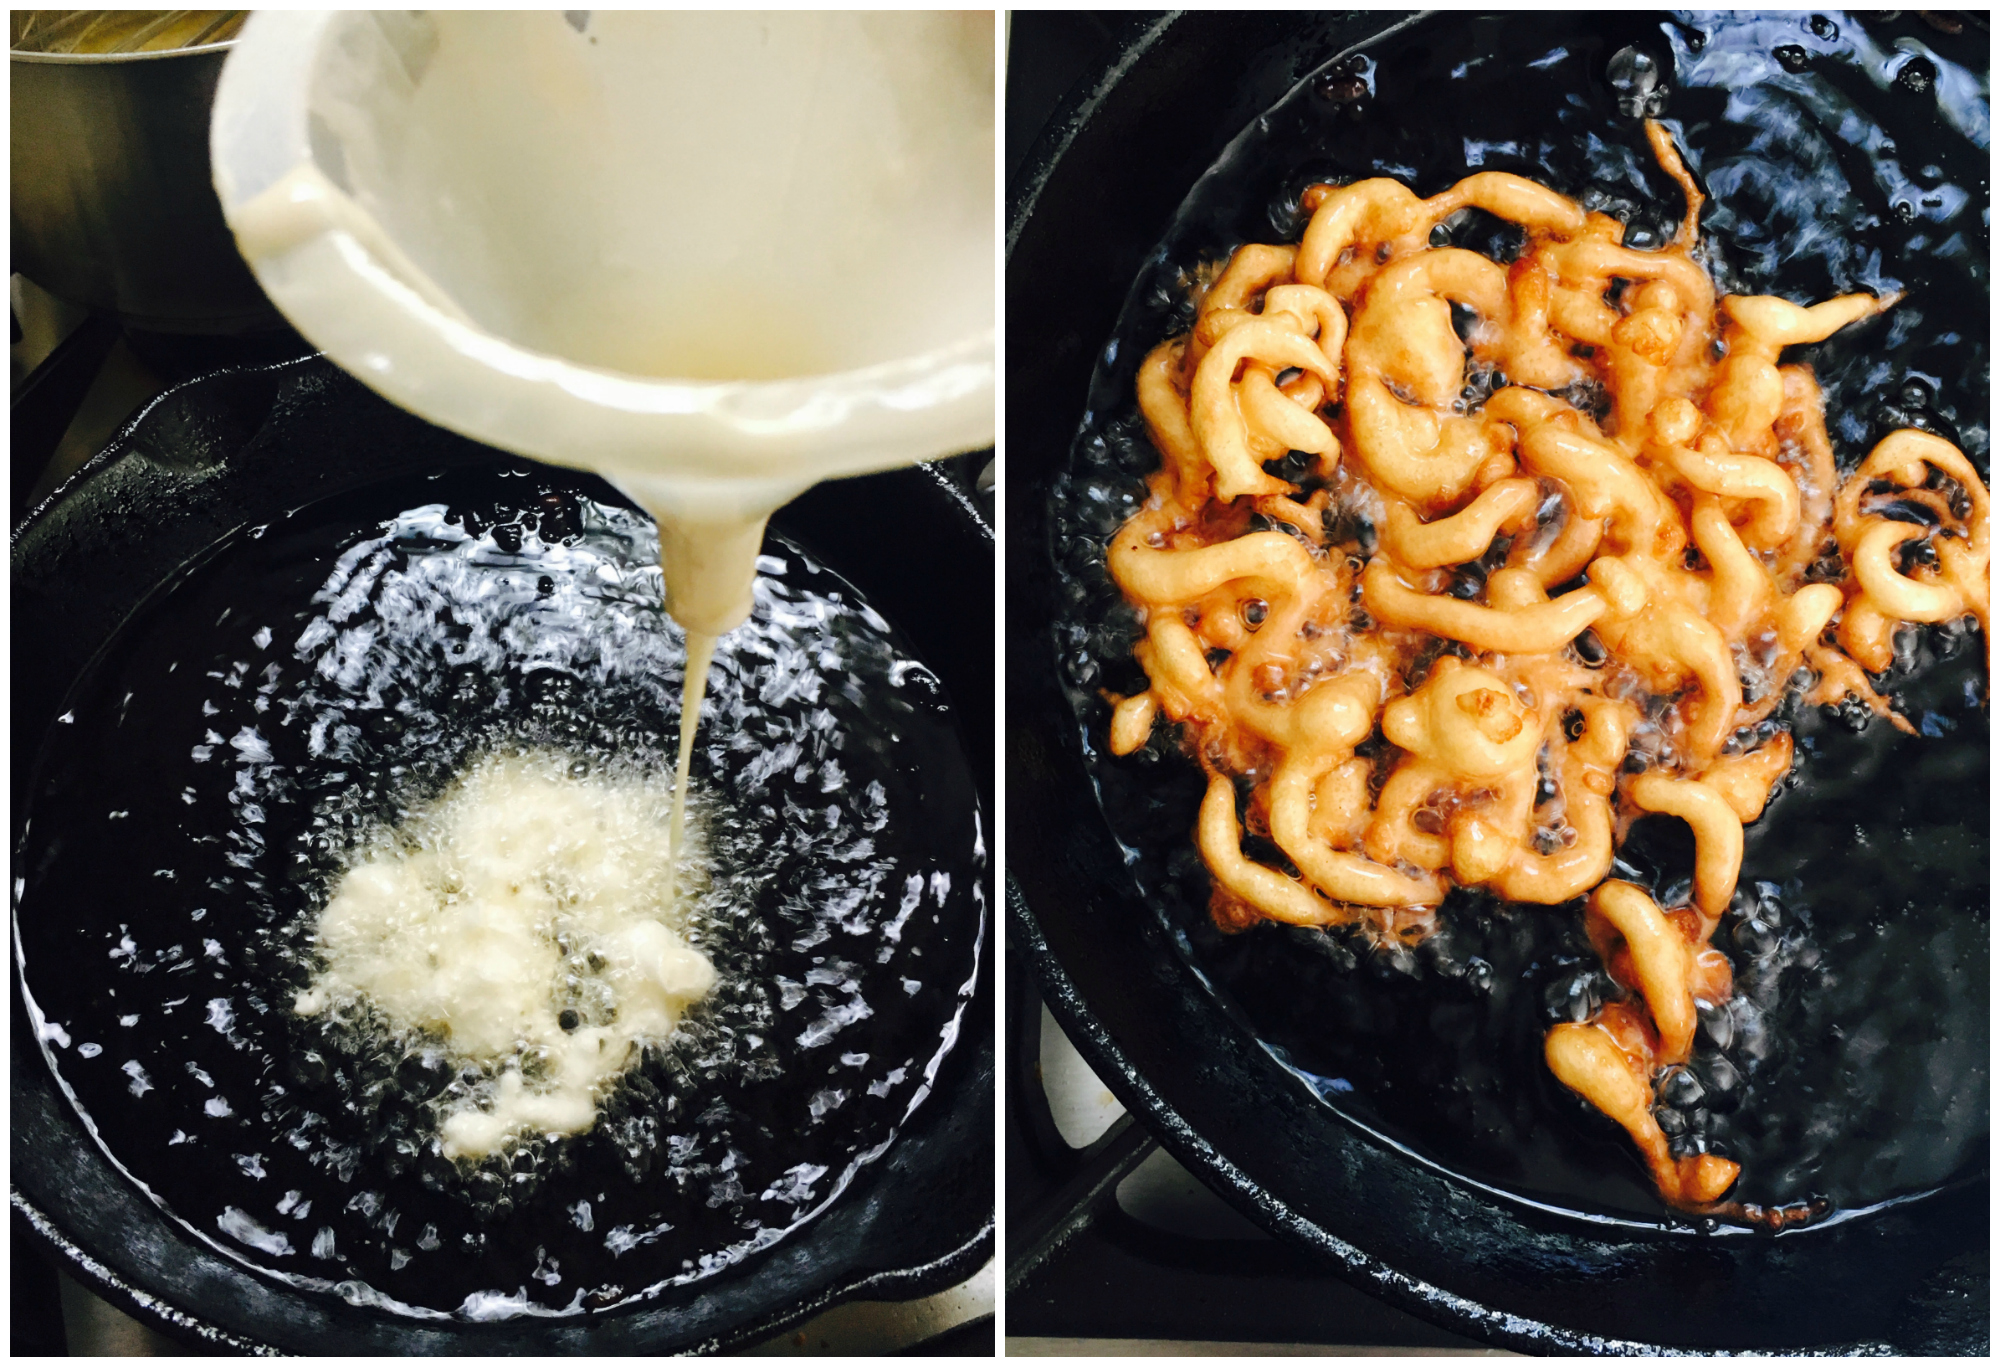 Cooking funnel cakes